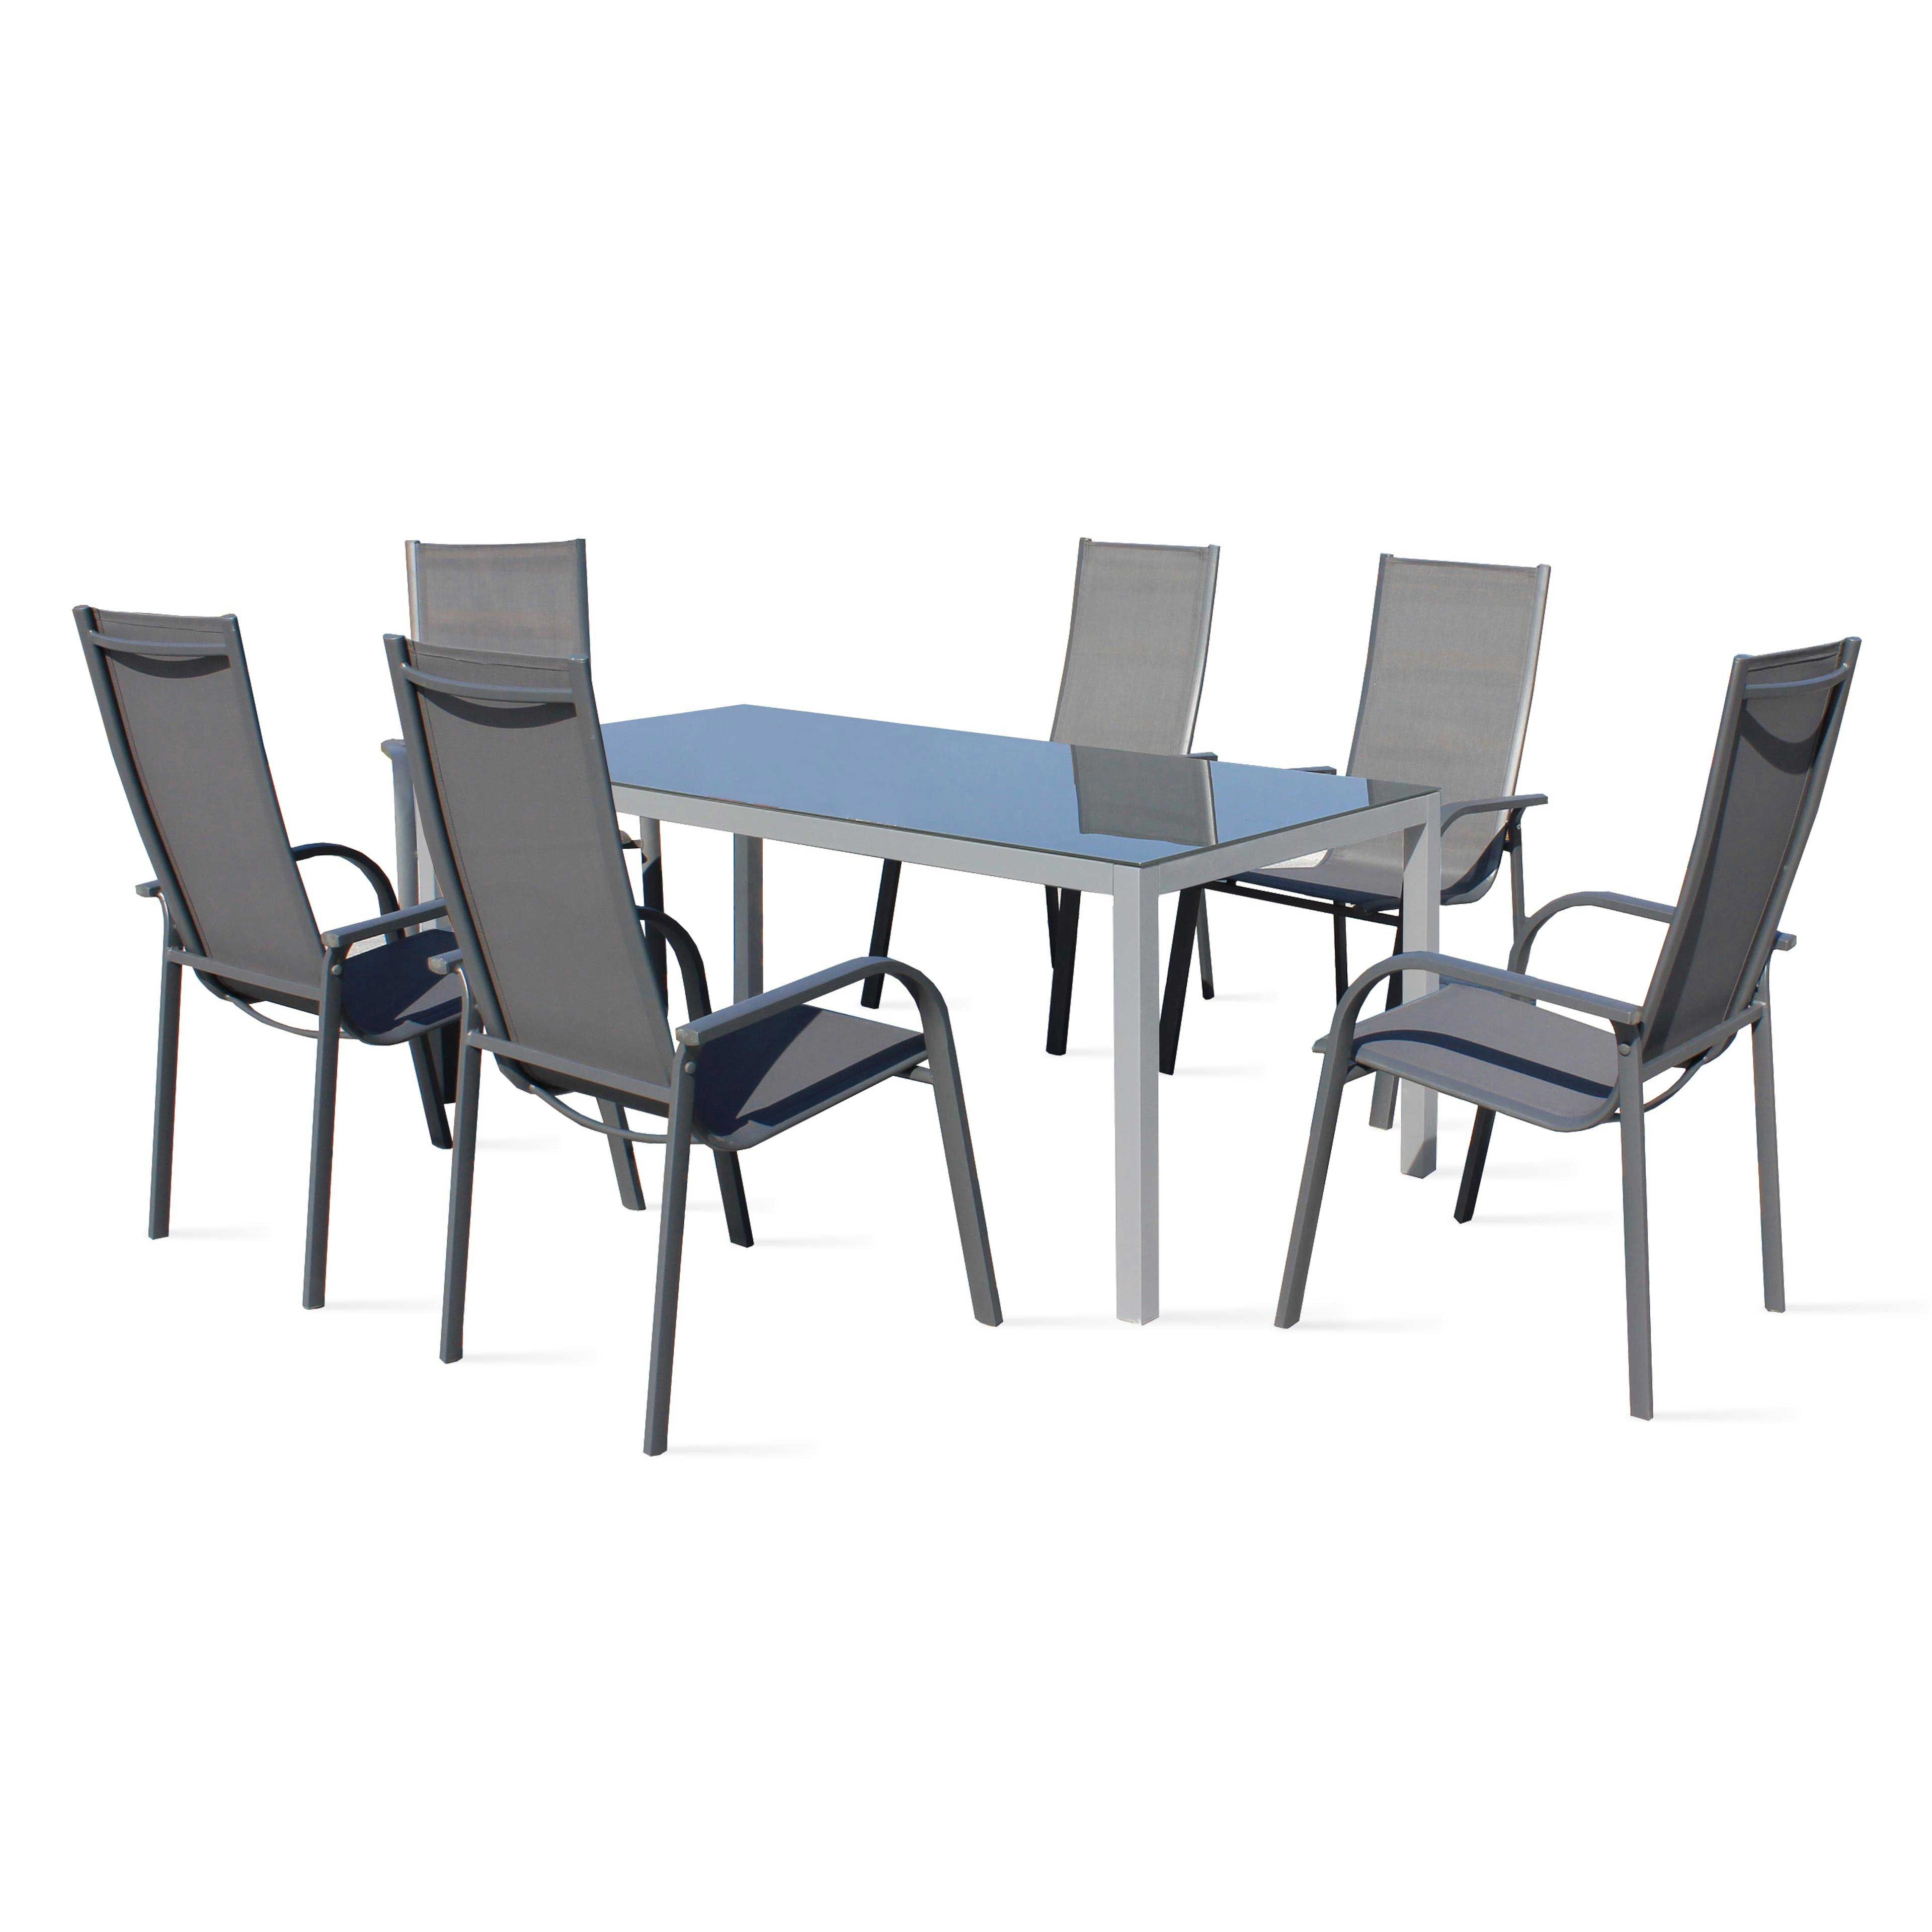 table de jardin en aluminium pas cher salon de jardin aluminium resine tressee com with table. Black Bedroom Furniture Sets. Home Design Ideas